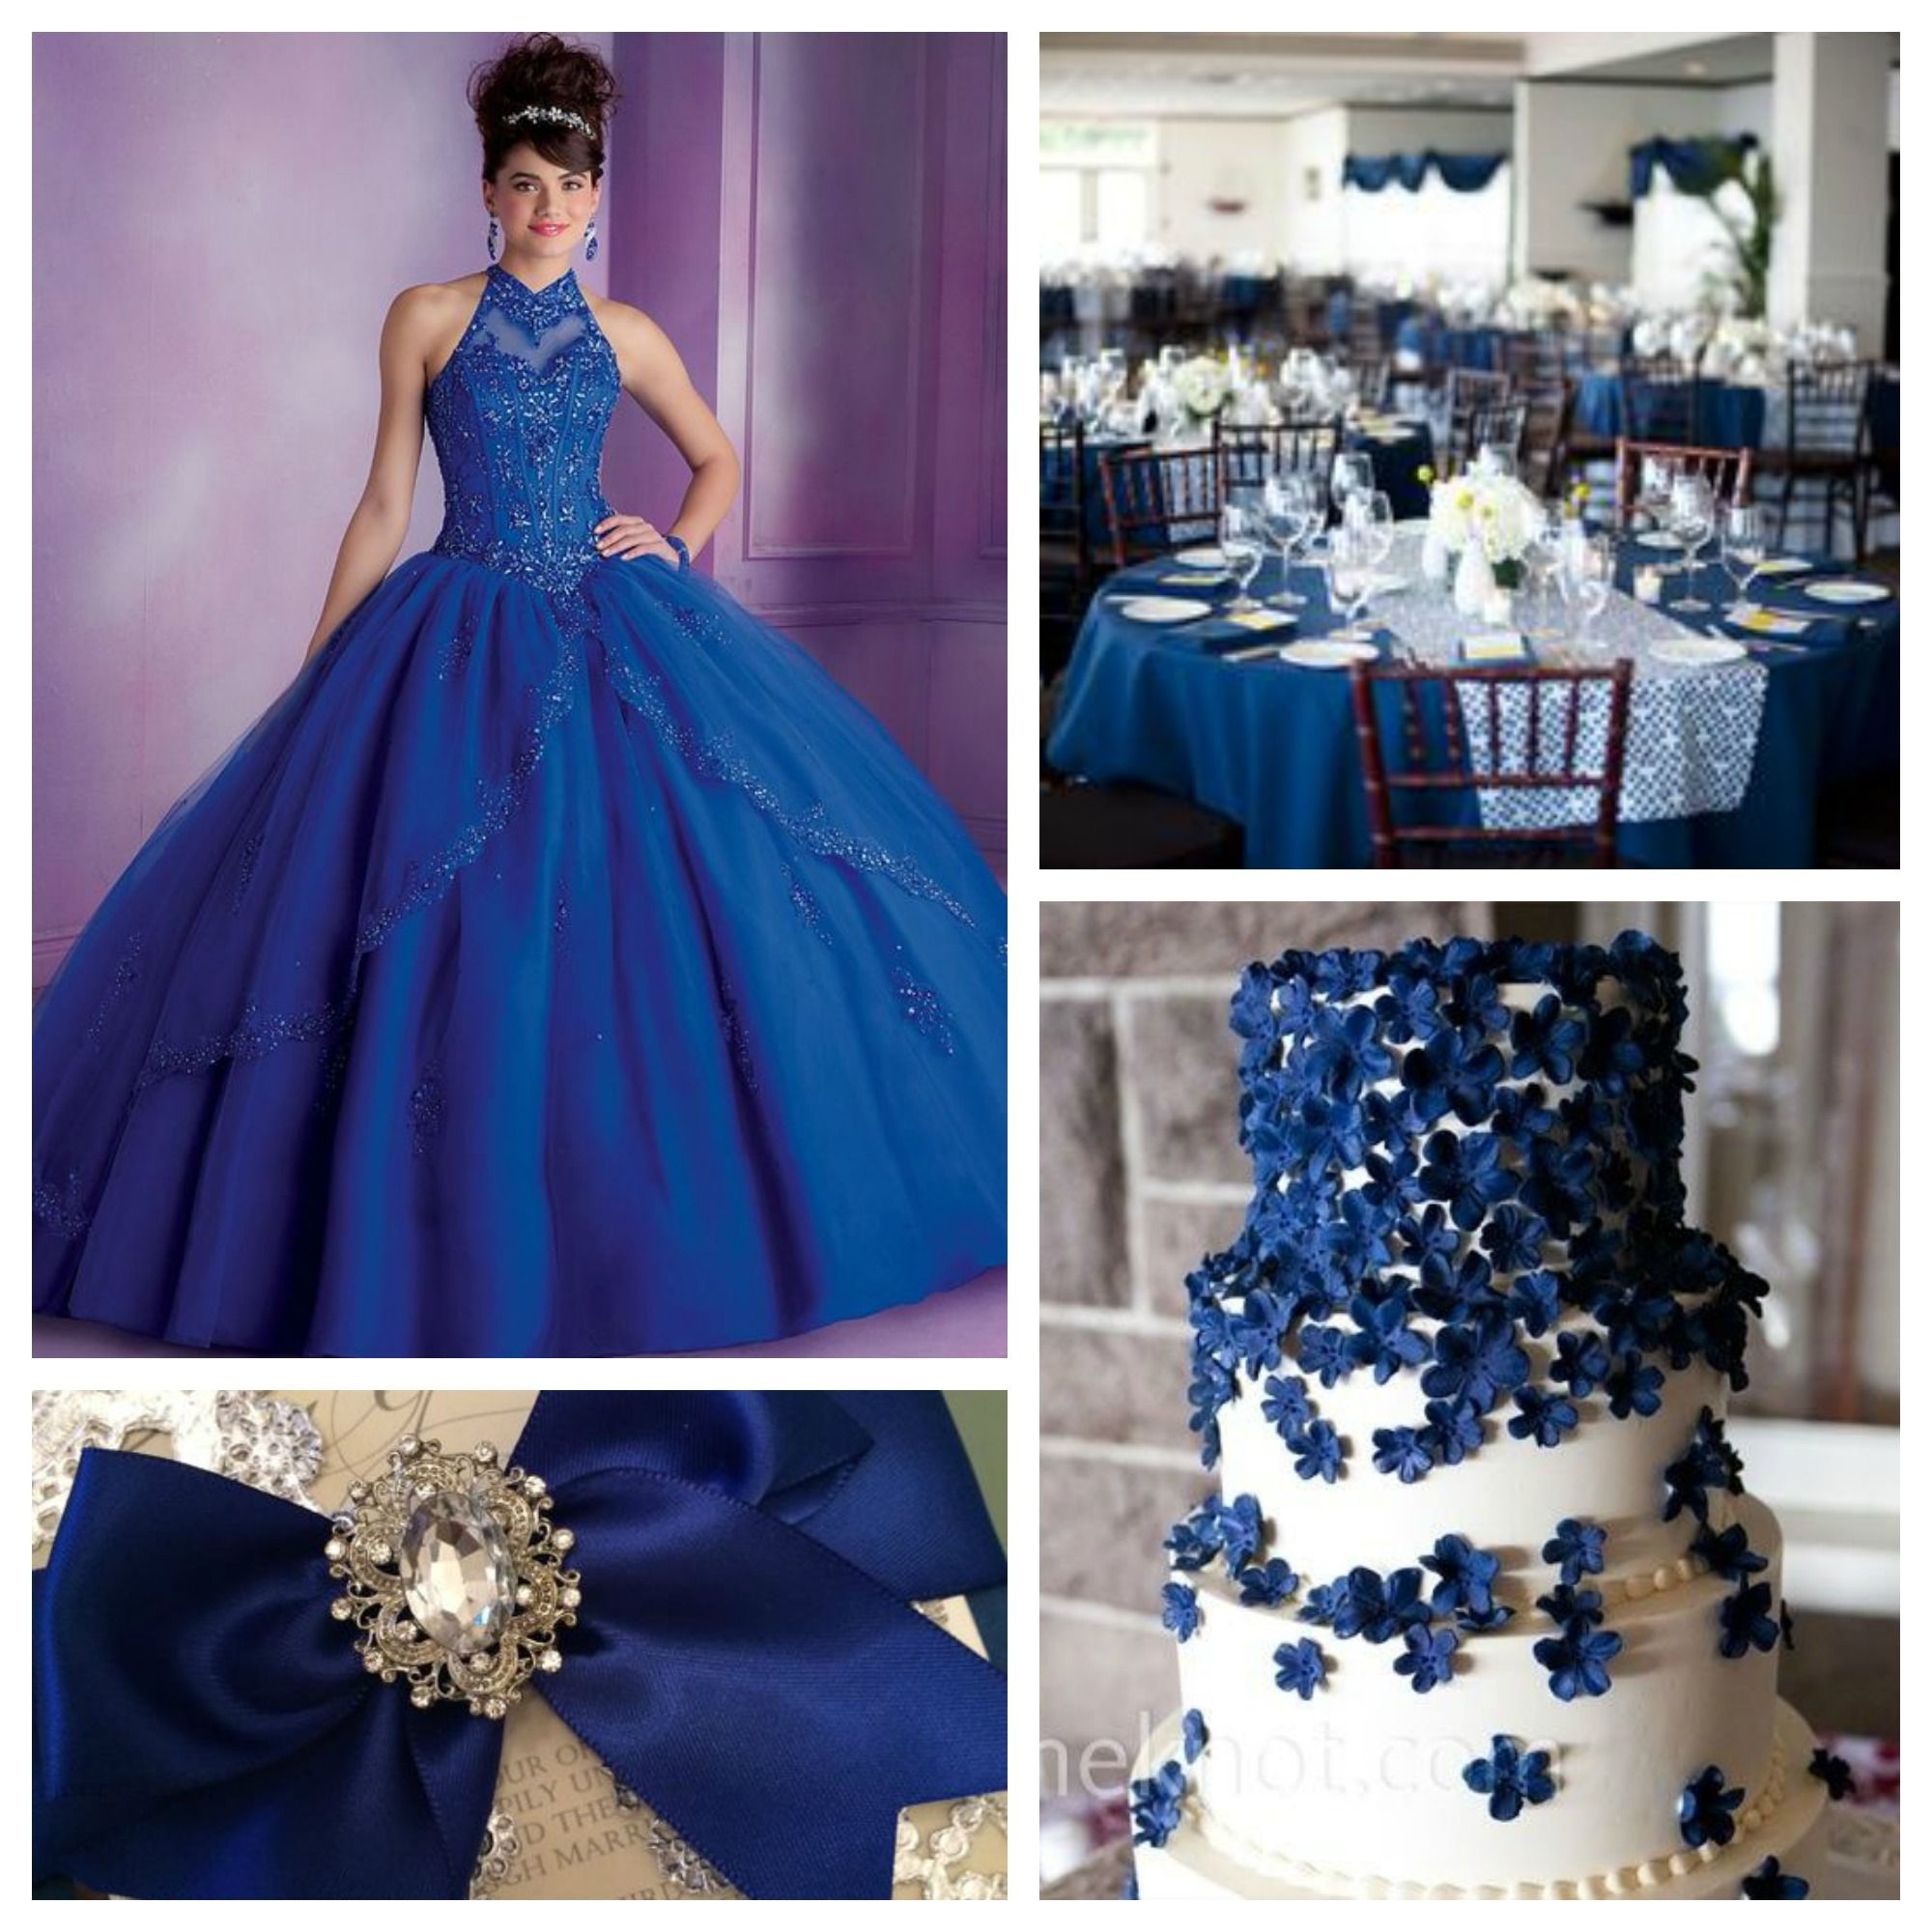 Quince Theme Decorations